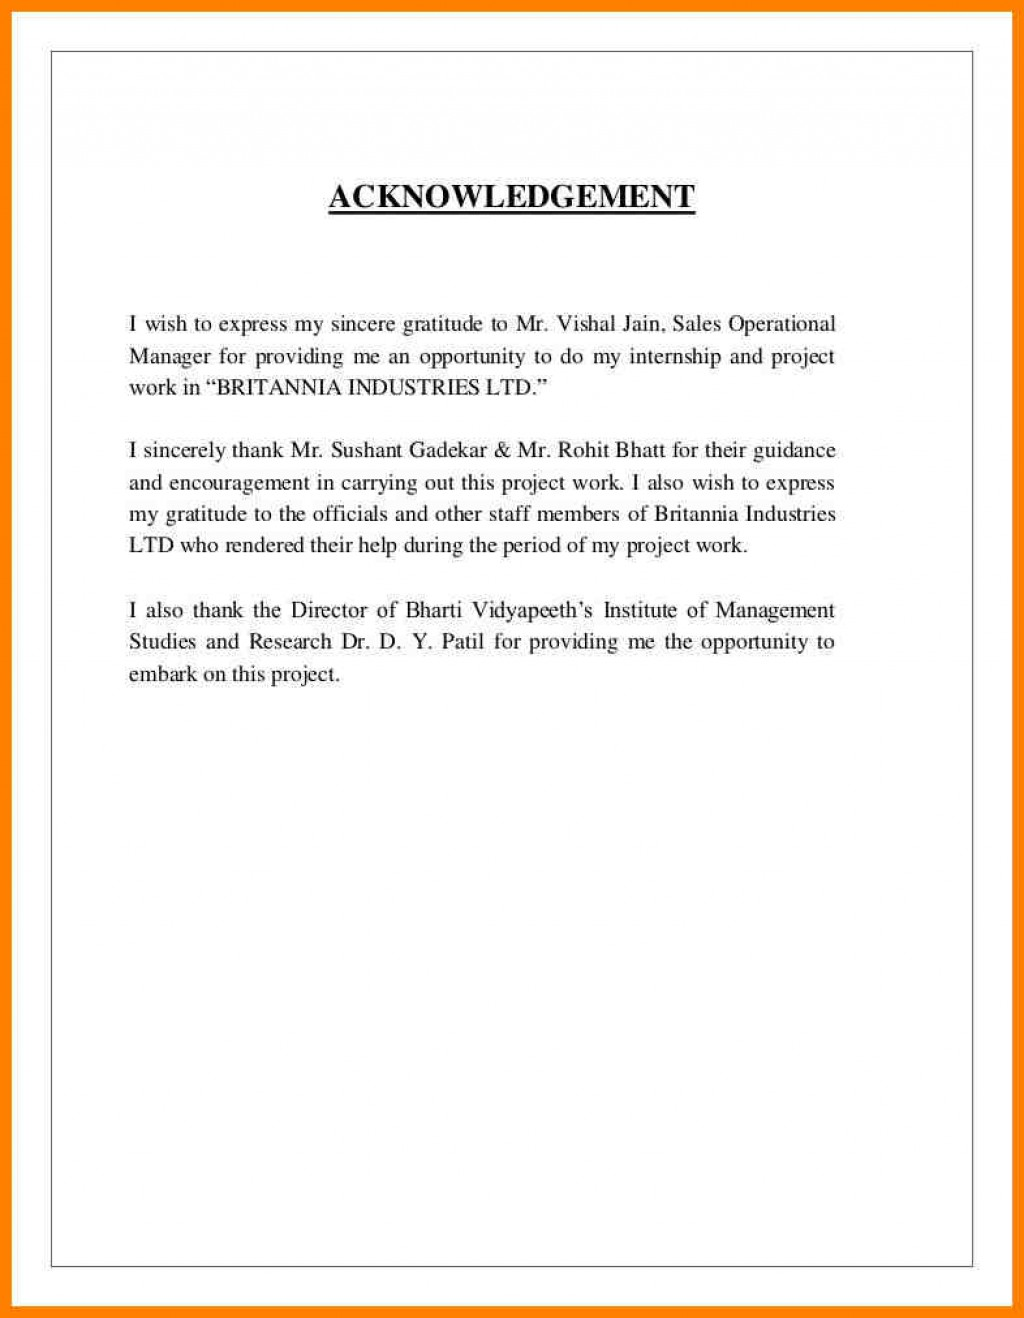 027 Sample Acknowledgement Page For Research Papers On Free Term Paper Essays Apa Short Essay Format Staggering Topic Proposal Childhood Obesity Writing Large